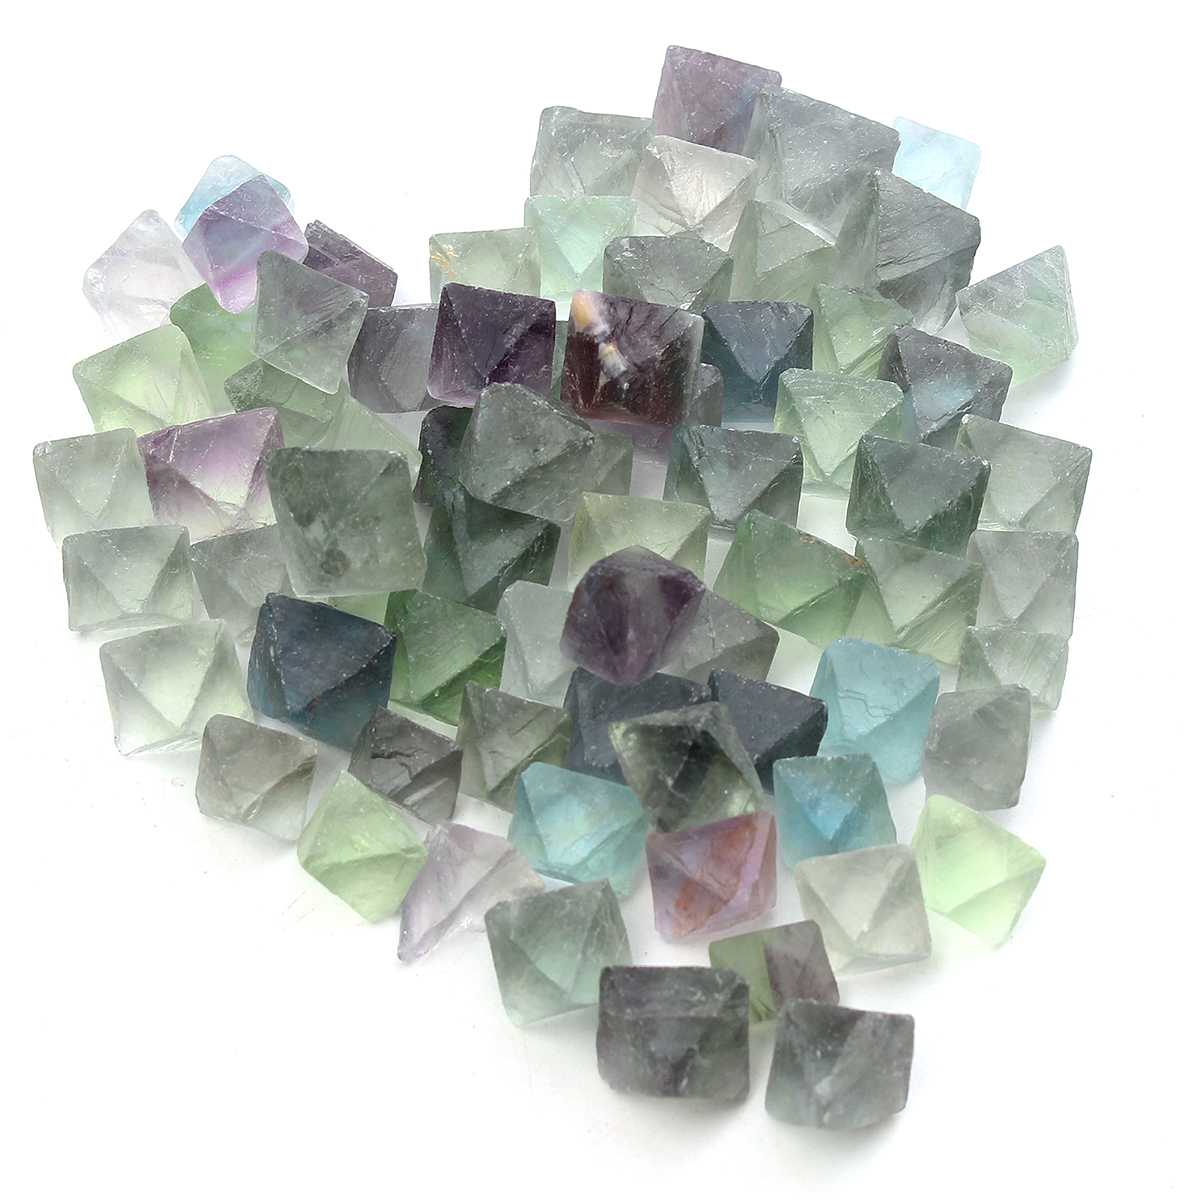 About 50-60Pcs 230g Blue And Green Fluorite Octahedron Crystals Stones Healing Stones Fluorite Raw Gemstone Ornament Stone